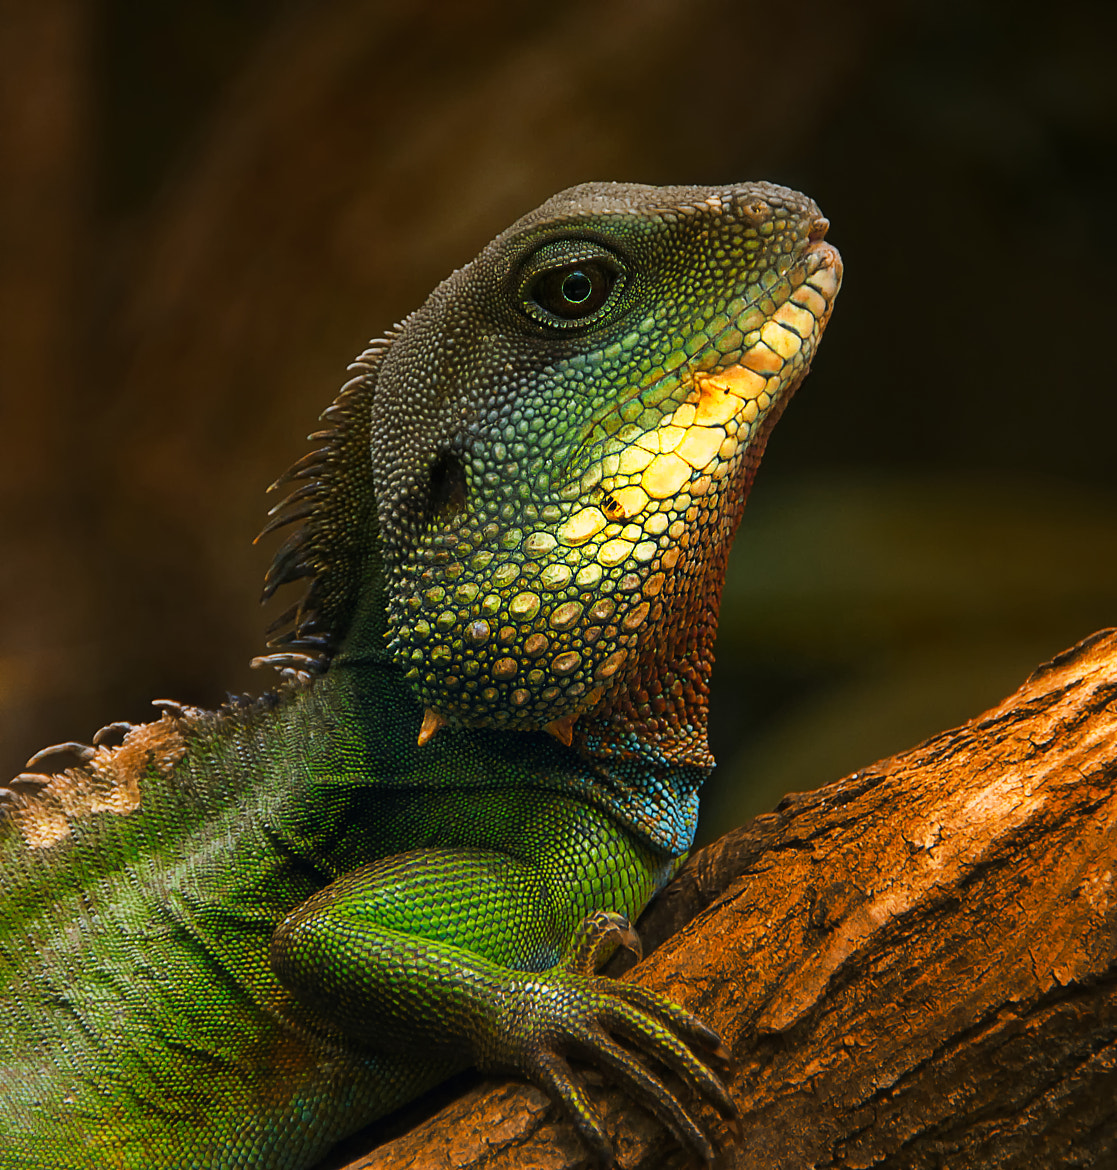 Photograph proud dragon by Sonja Probst on 500px